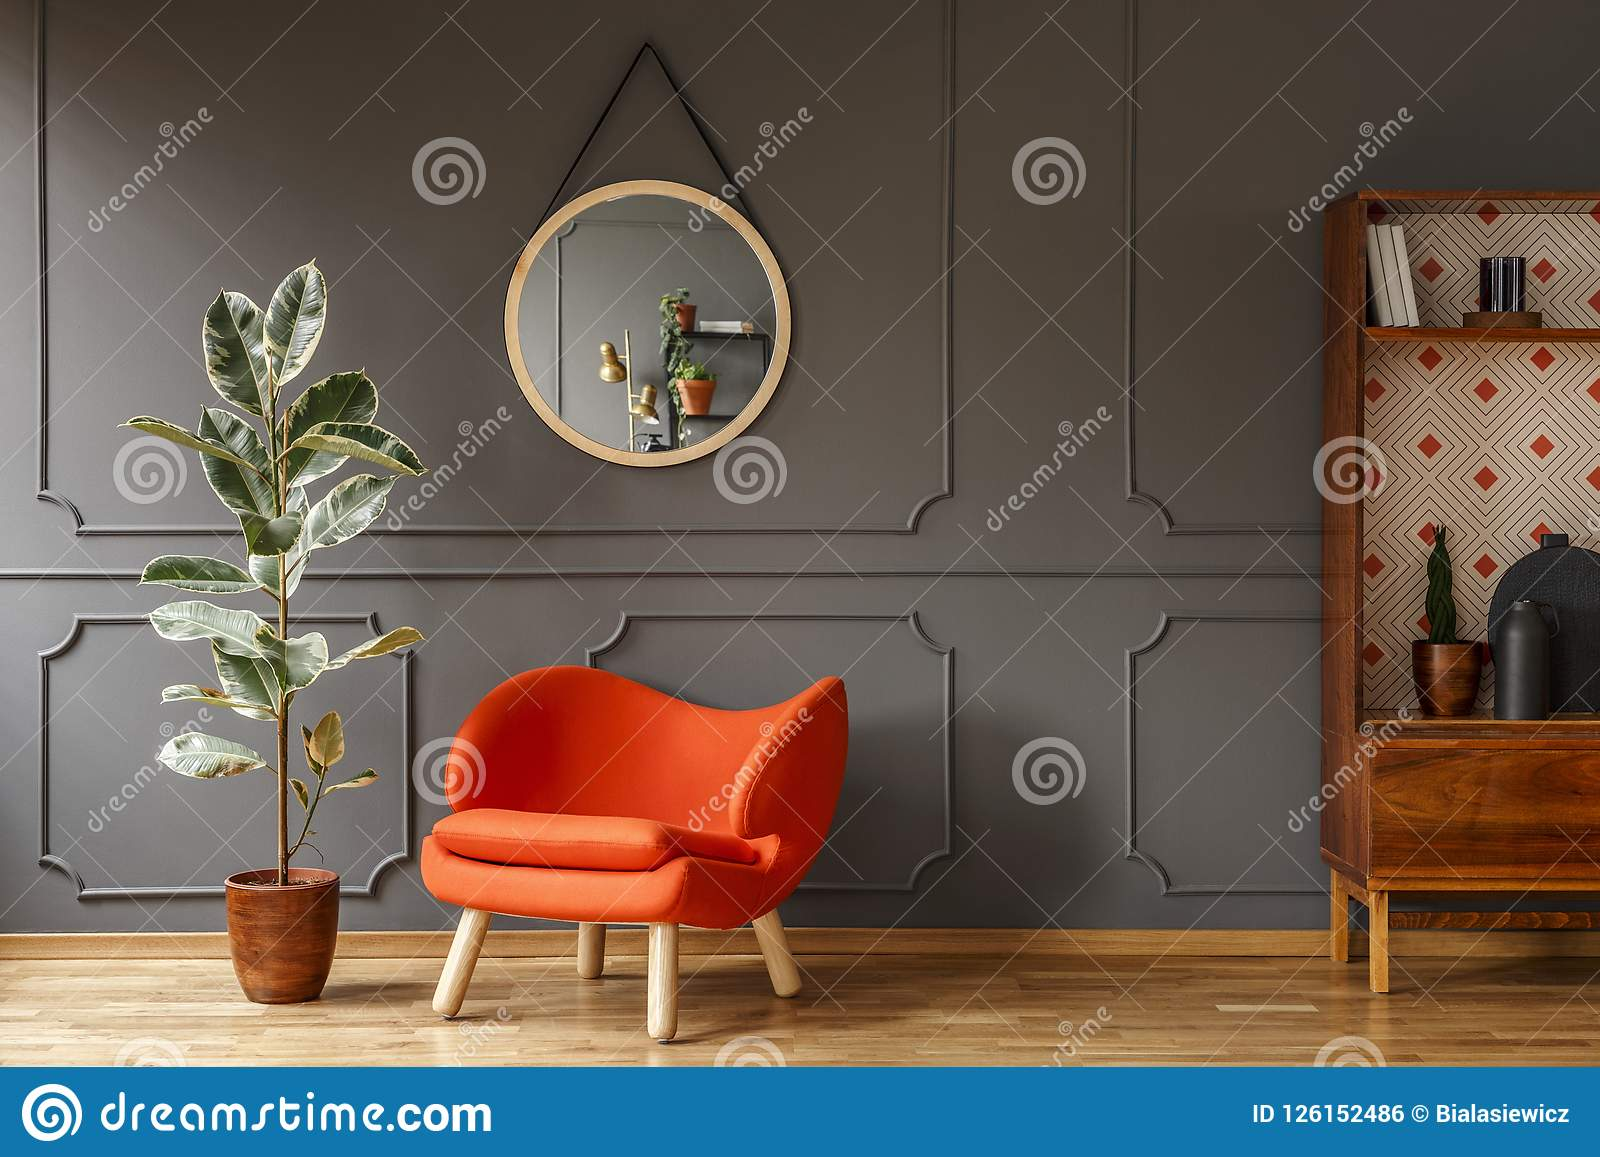 Bright orange armchair, a retro wooden cabinet and a mirror on a